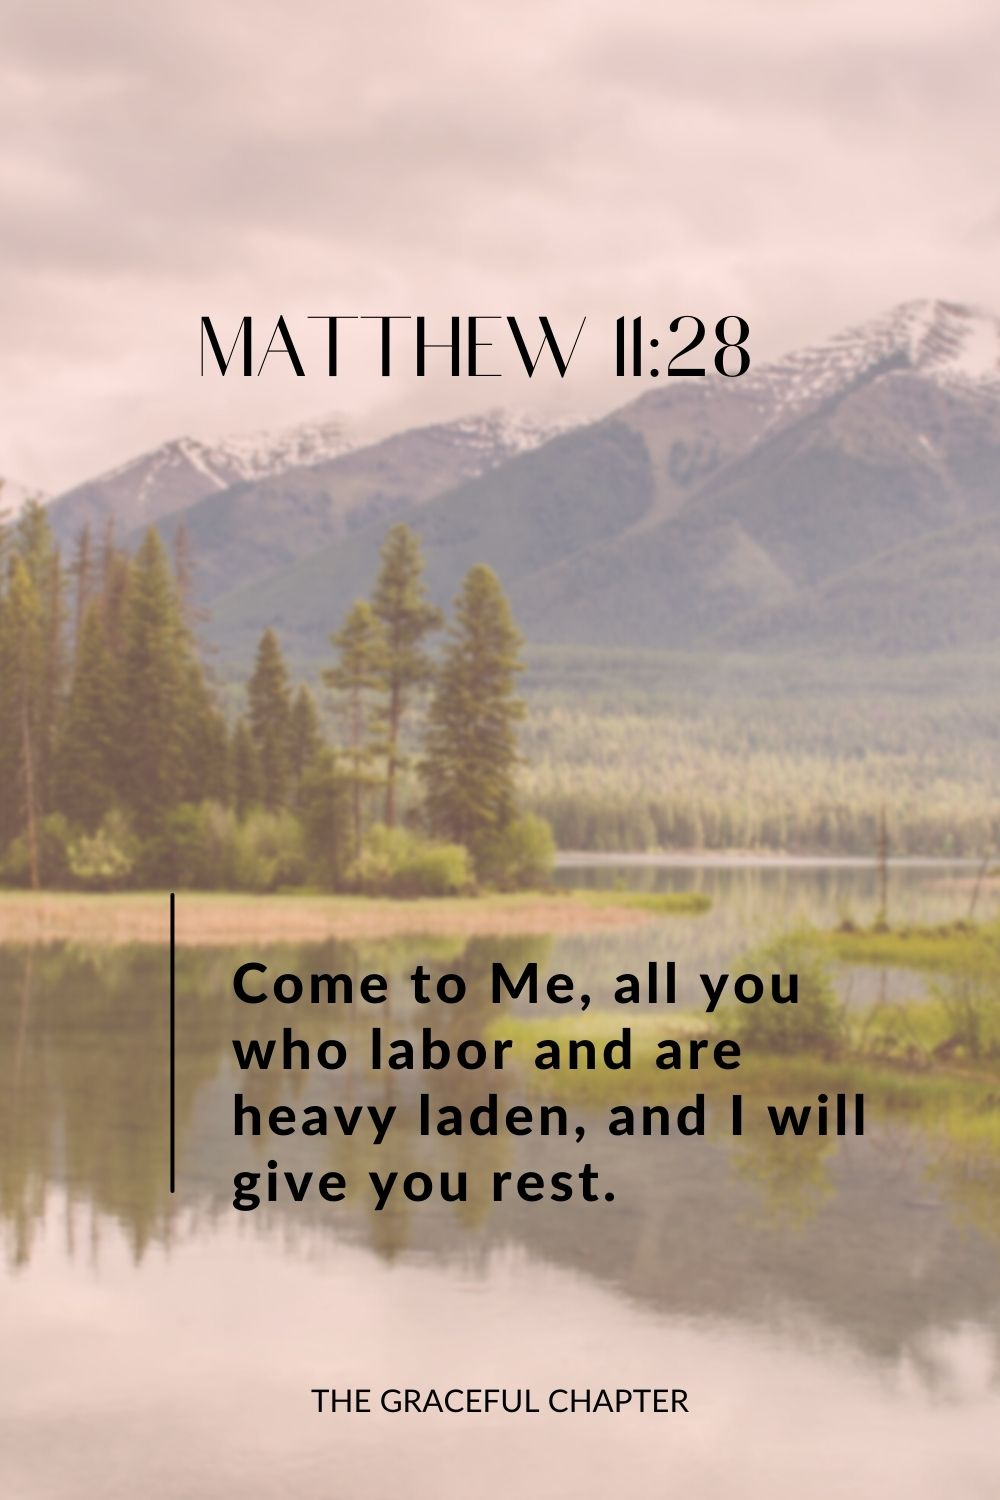 Come to Me, all you who labor and are heavy laden, and I will give you rest. Matthew 11:28